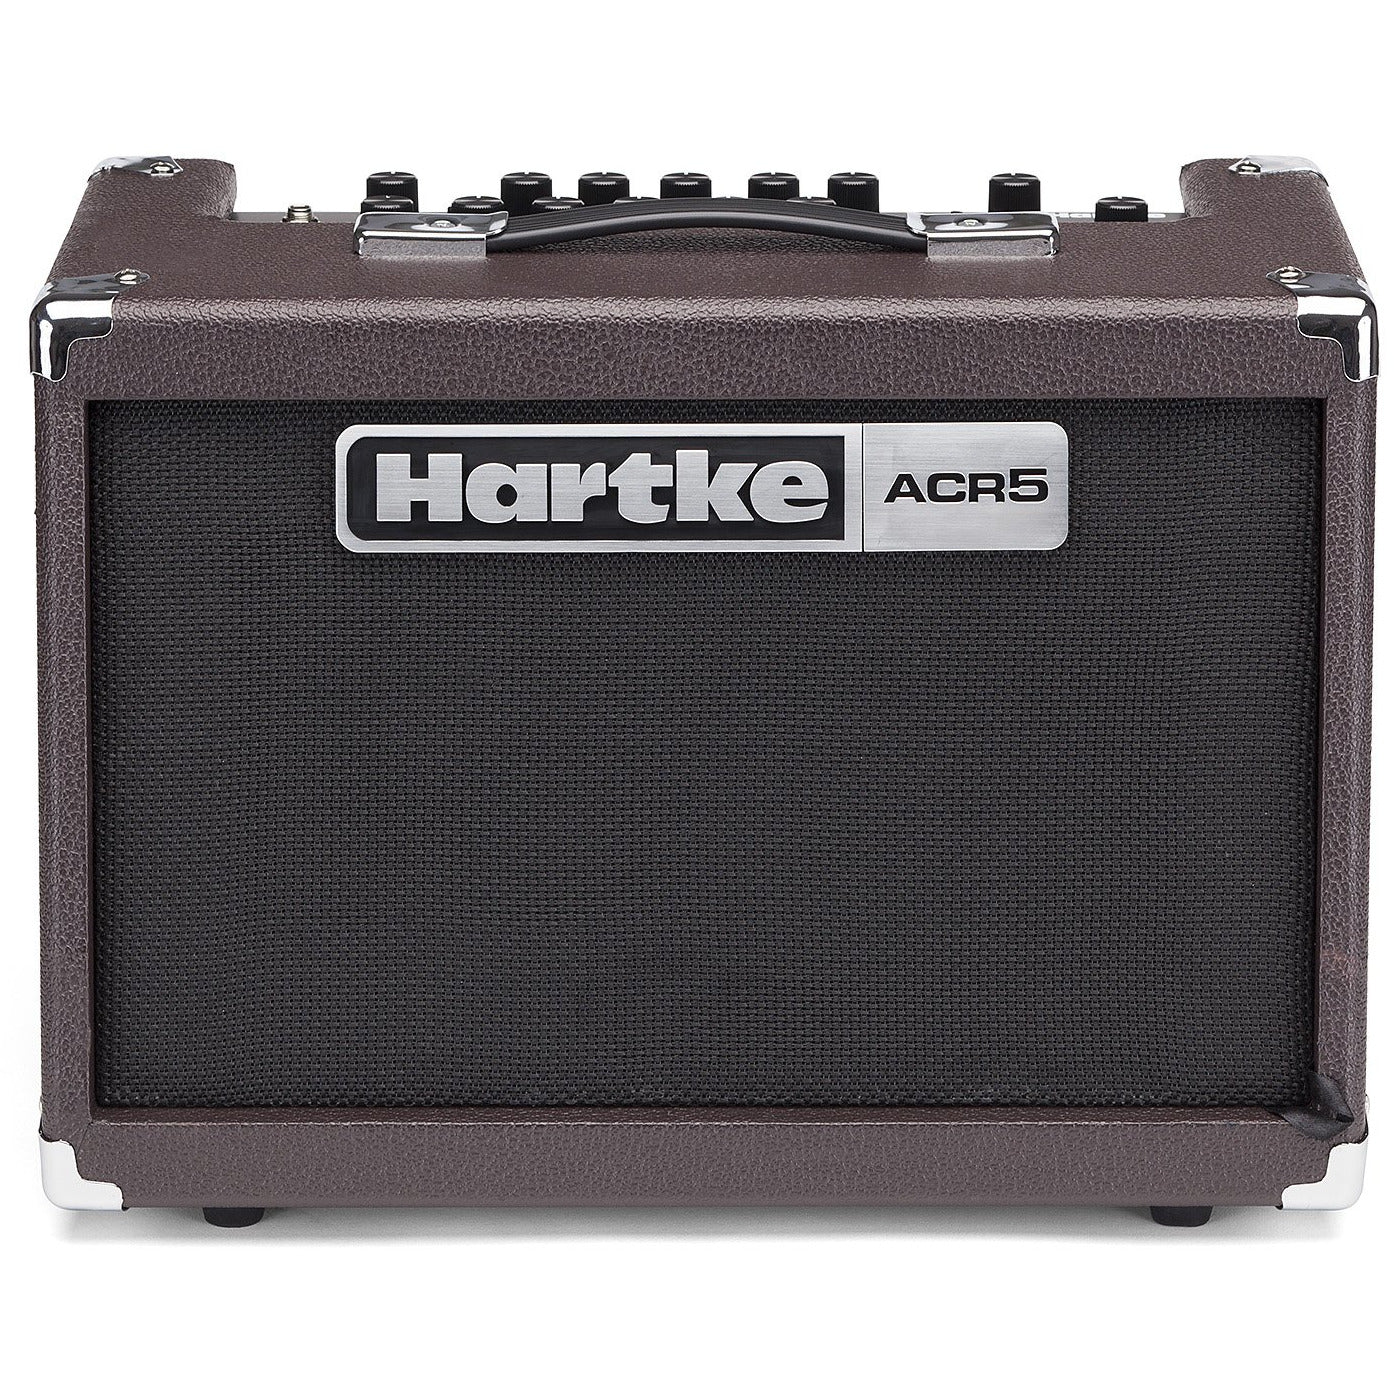 Hartke  ACR5 ACR5 Acoustic Guitar Amplifier